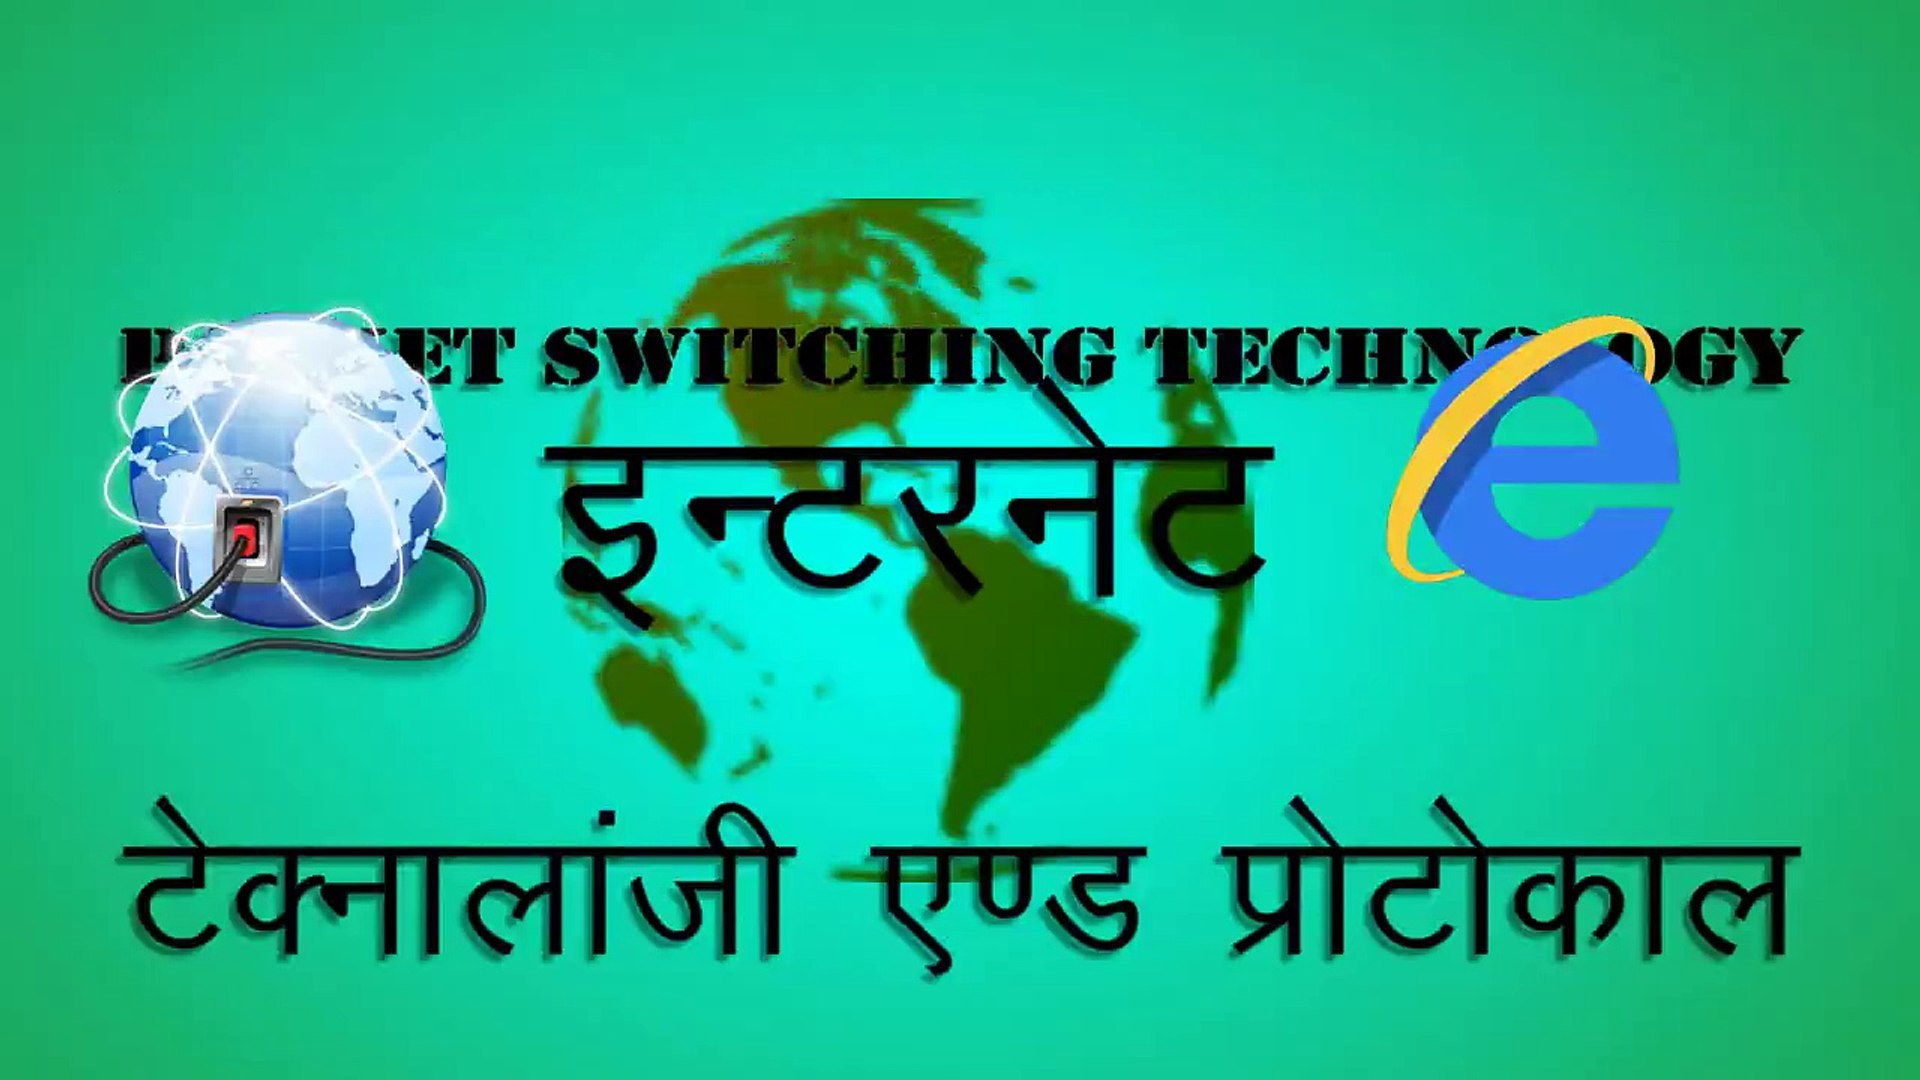 INTERNET TECHNOLOGY AND WEB DESIGN-TCP/IP – Internet Technology and Protocol-Packet switching techno